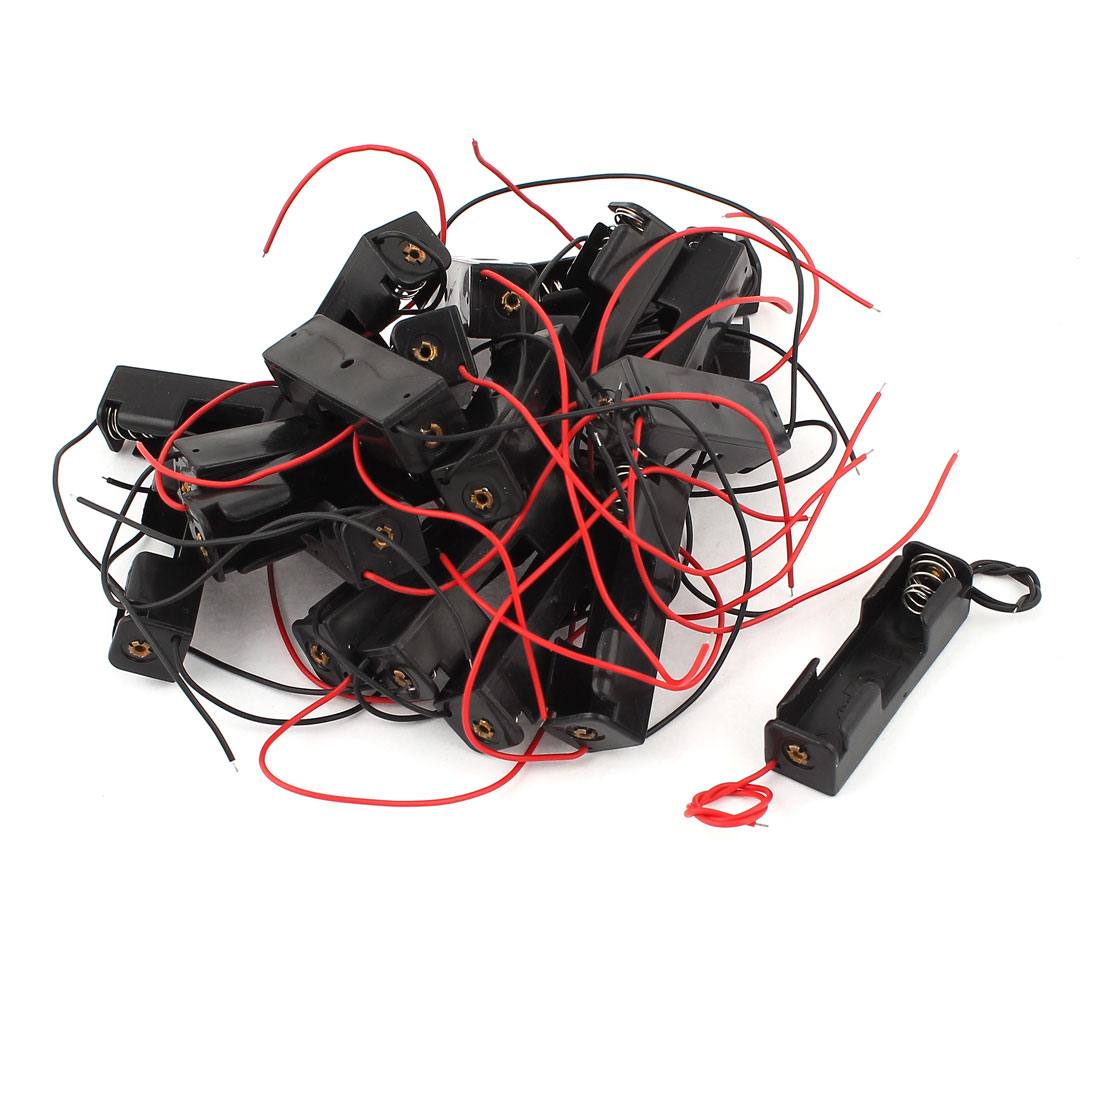 20 Pcs Black Red Wires Lead Plastic Shell Holder Case Box for 1 x AA Battery